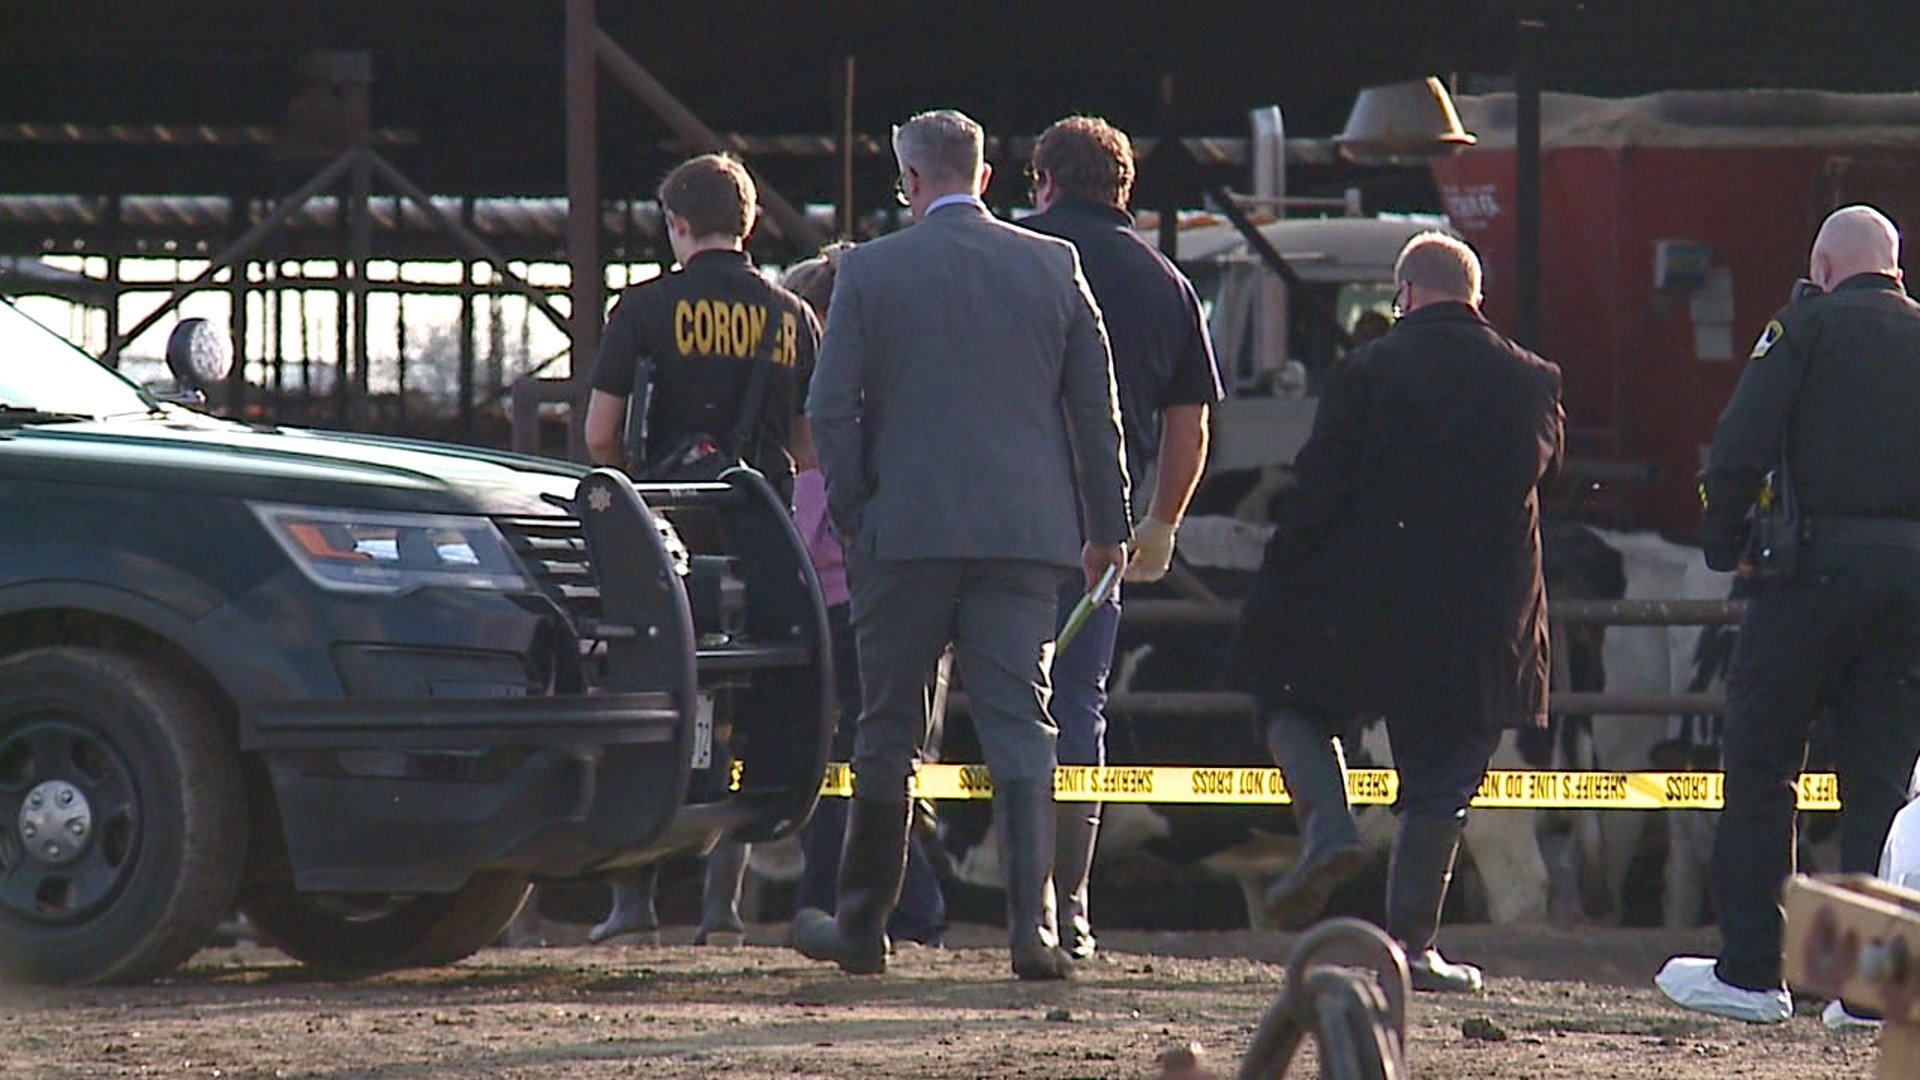 Homicide detectives responded to a dairy farm near Galt after the discovery of a dead man on Jan. 22, 2020. (Credit: KTXL)